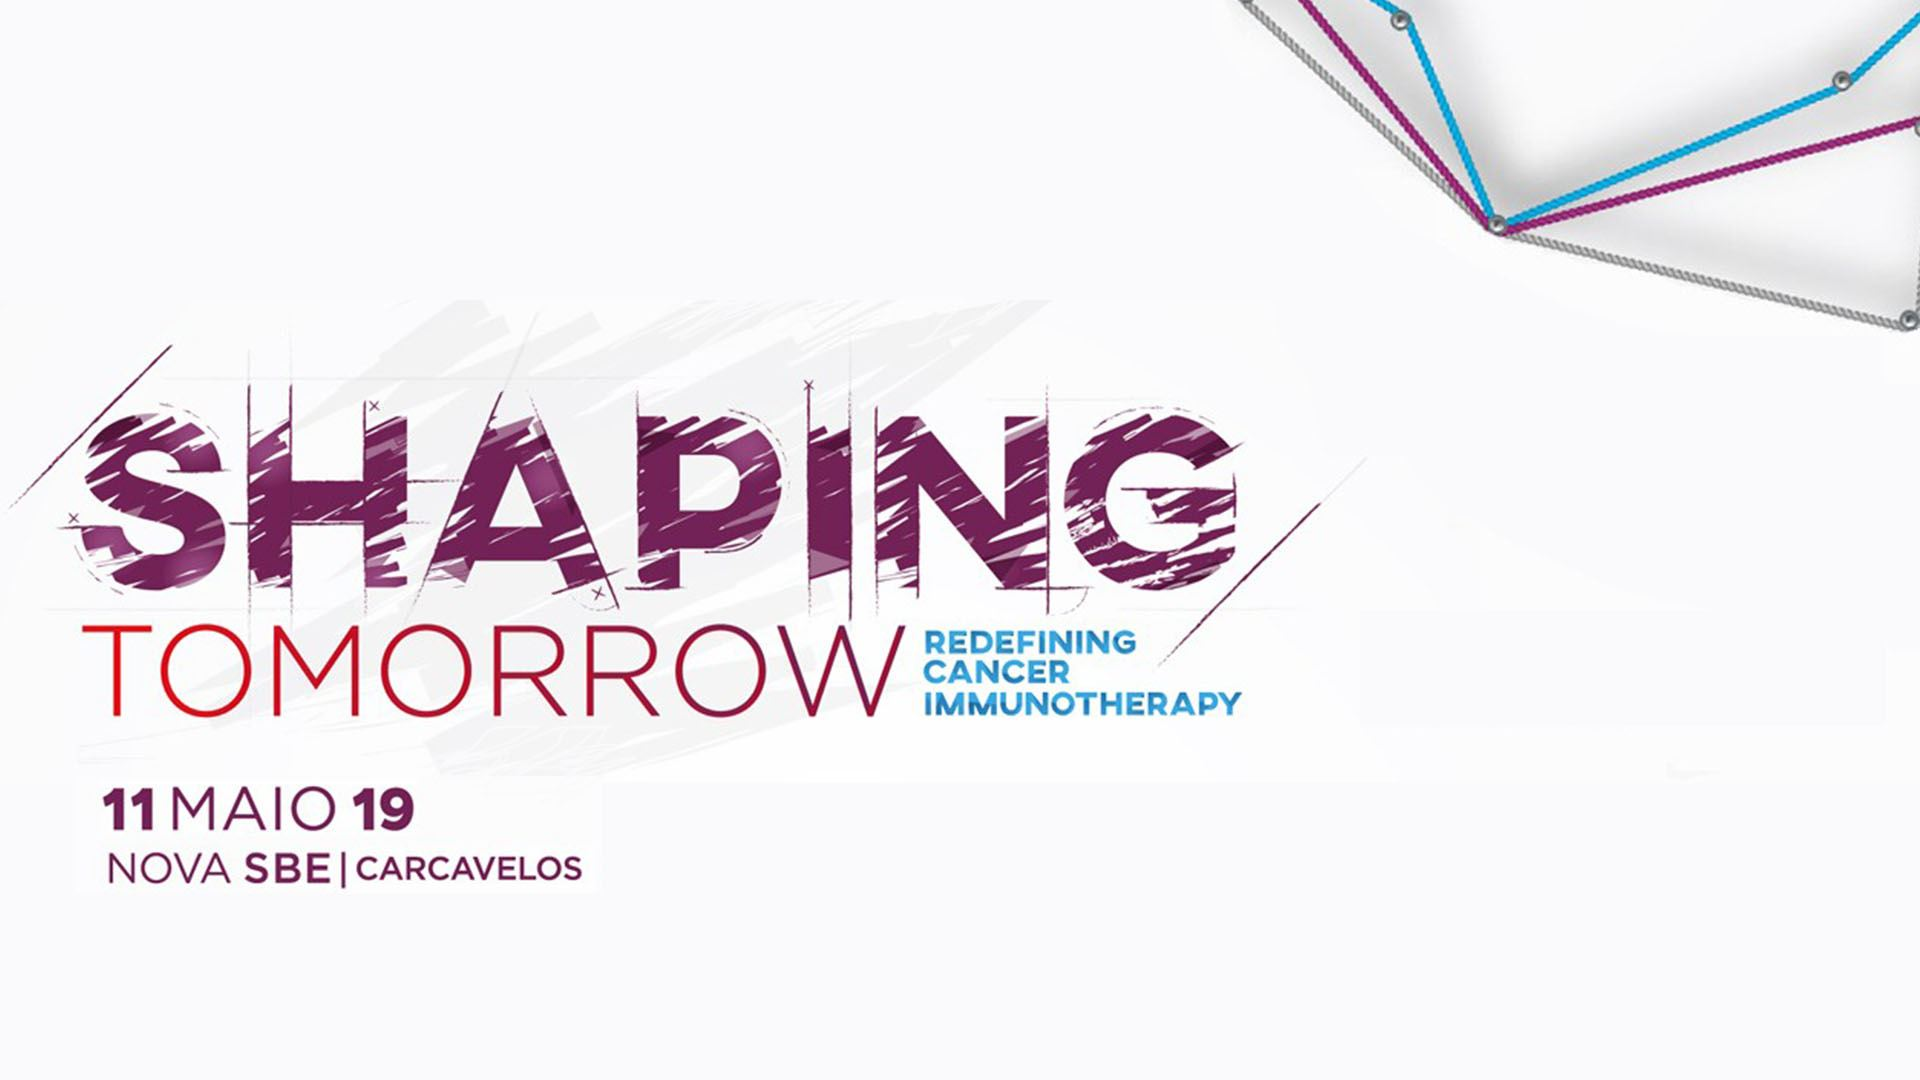 Shaping Tomorrow | Redefenir a Imunoterapia contra o Cancro